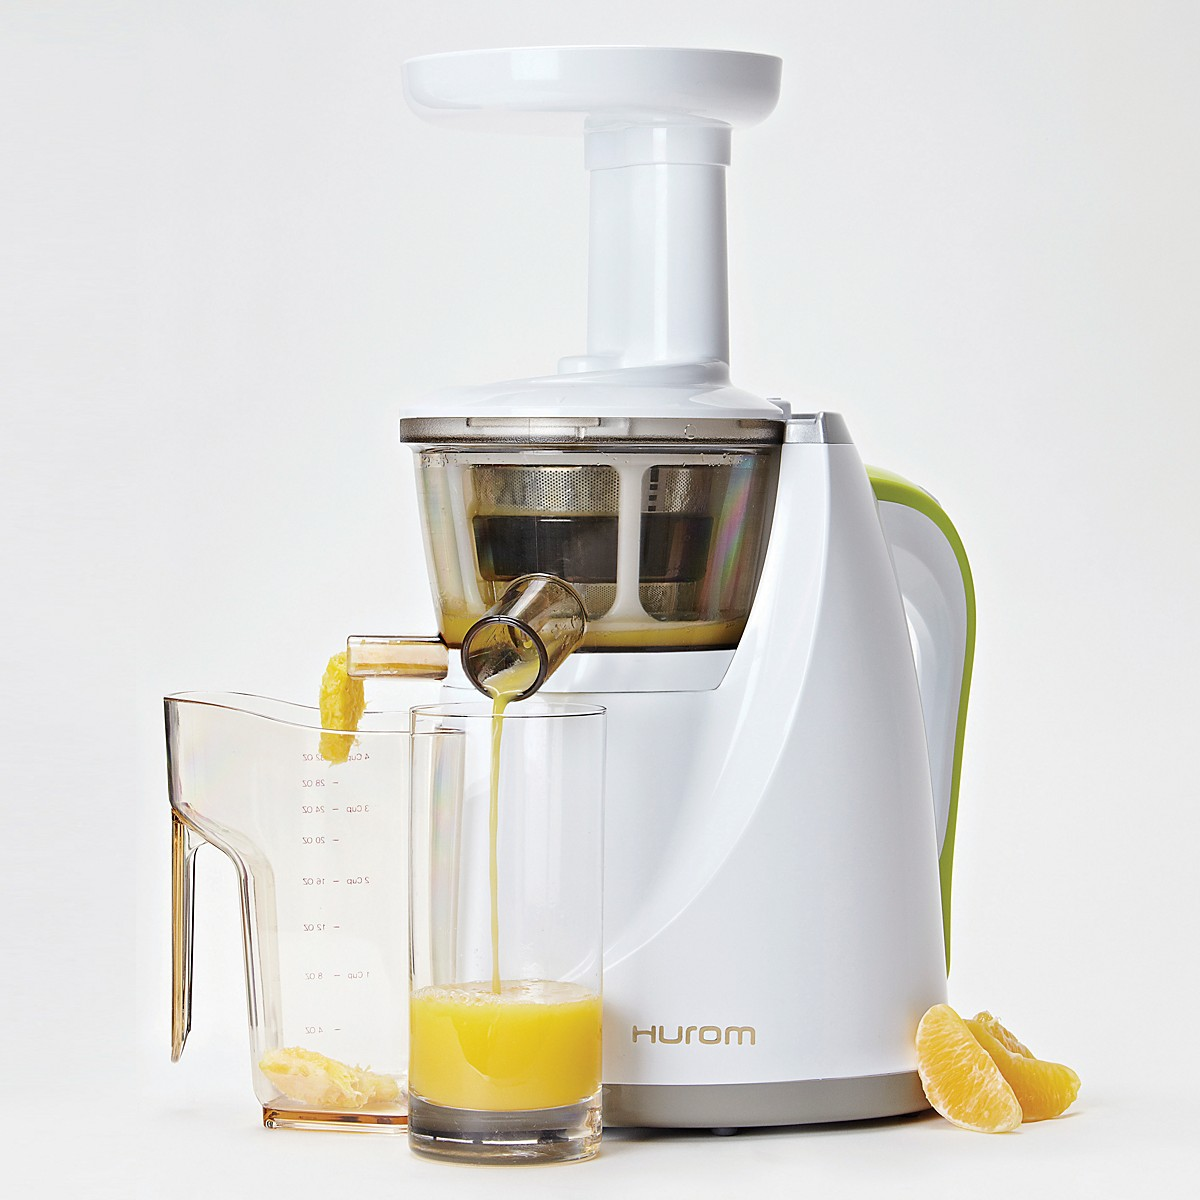 Hurom Slow Juicer Penang : The Wish List 2014 Our favourite kitchen appliances for chefs and avid home cooks